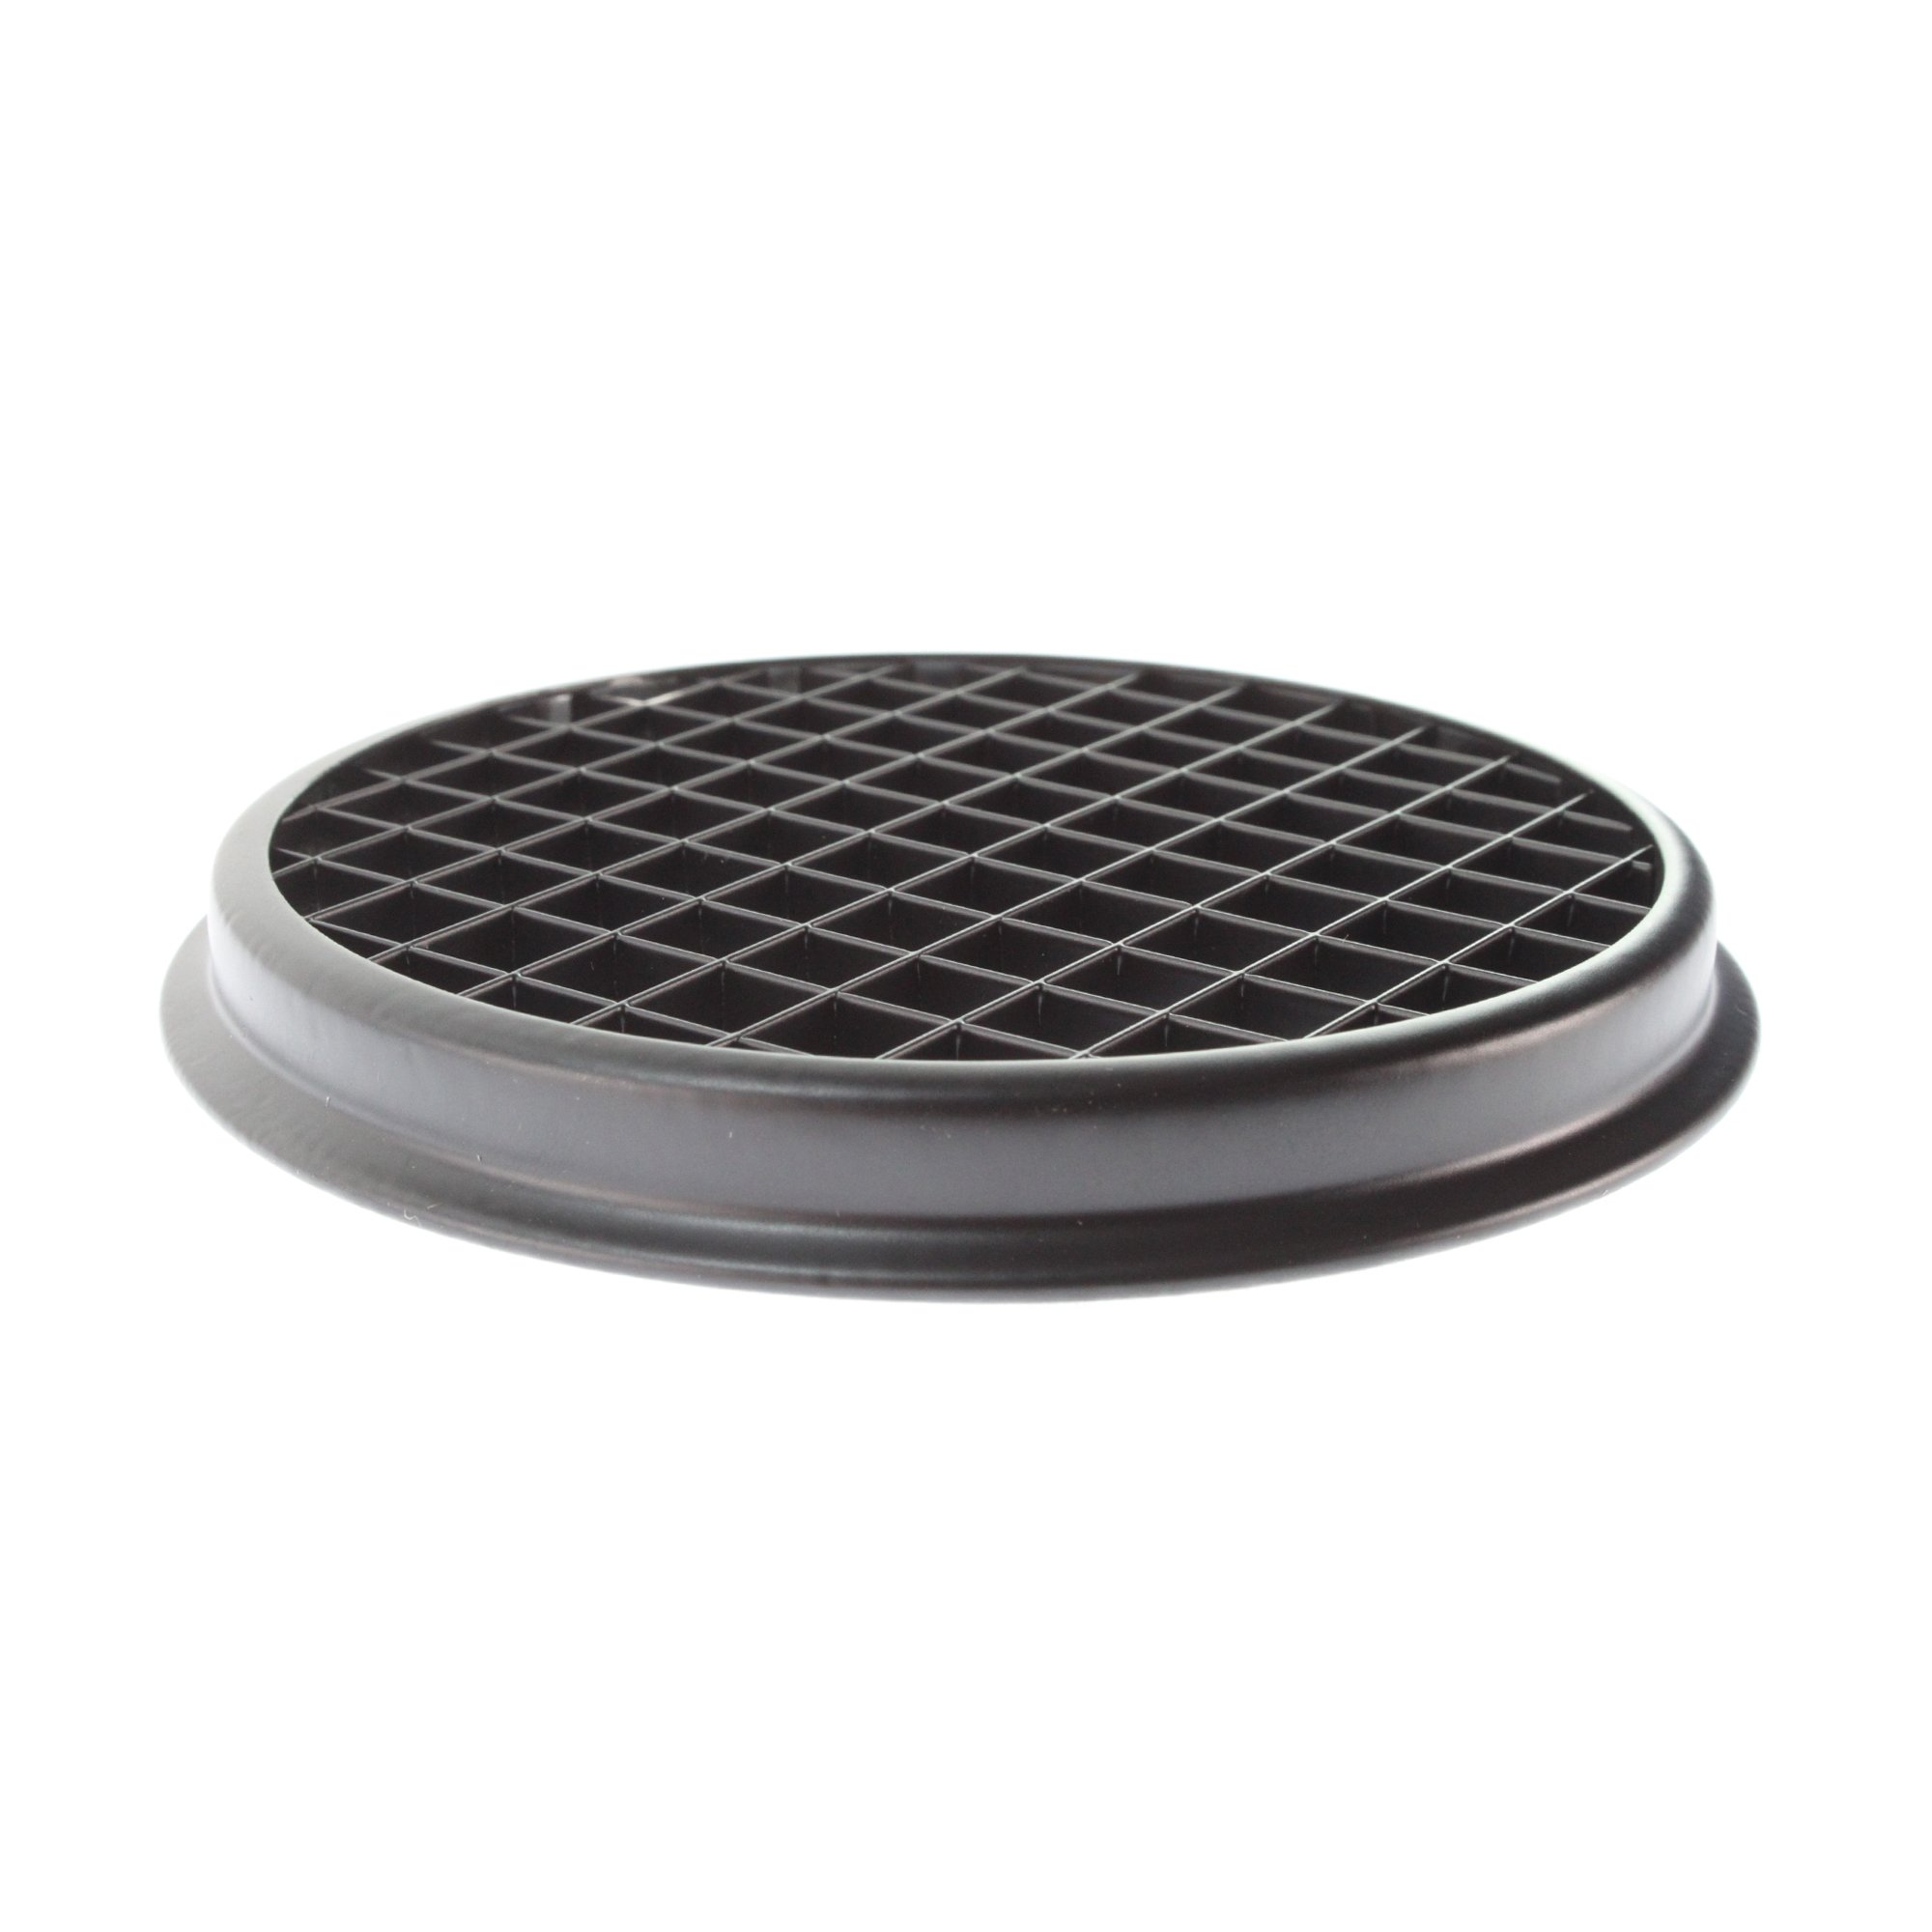 Lightolier 7597 Lytespan Accent & Display 4 3/4'' Diameter Square Cell Louver, Black